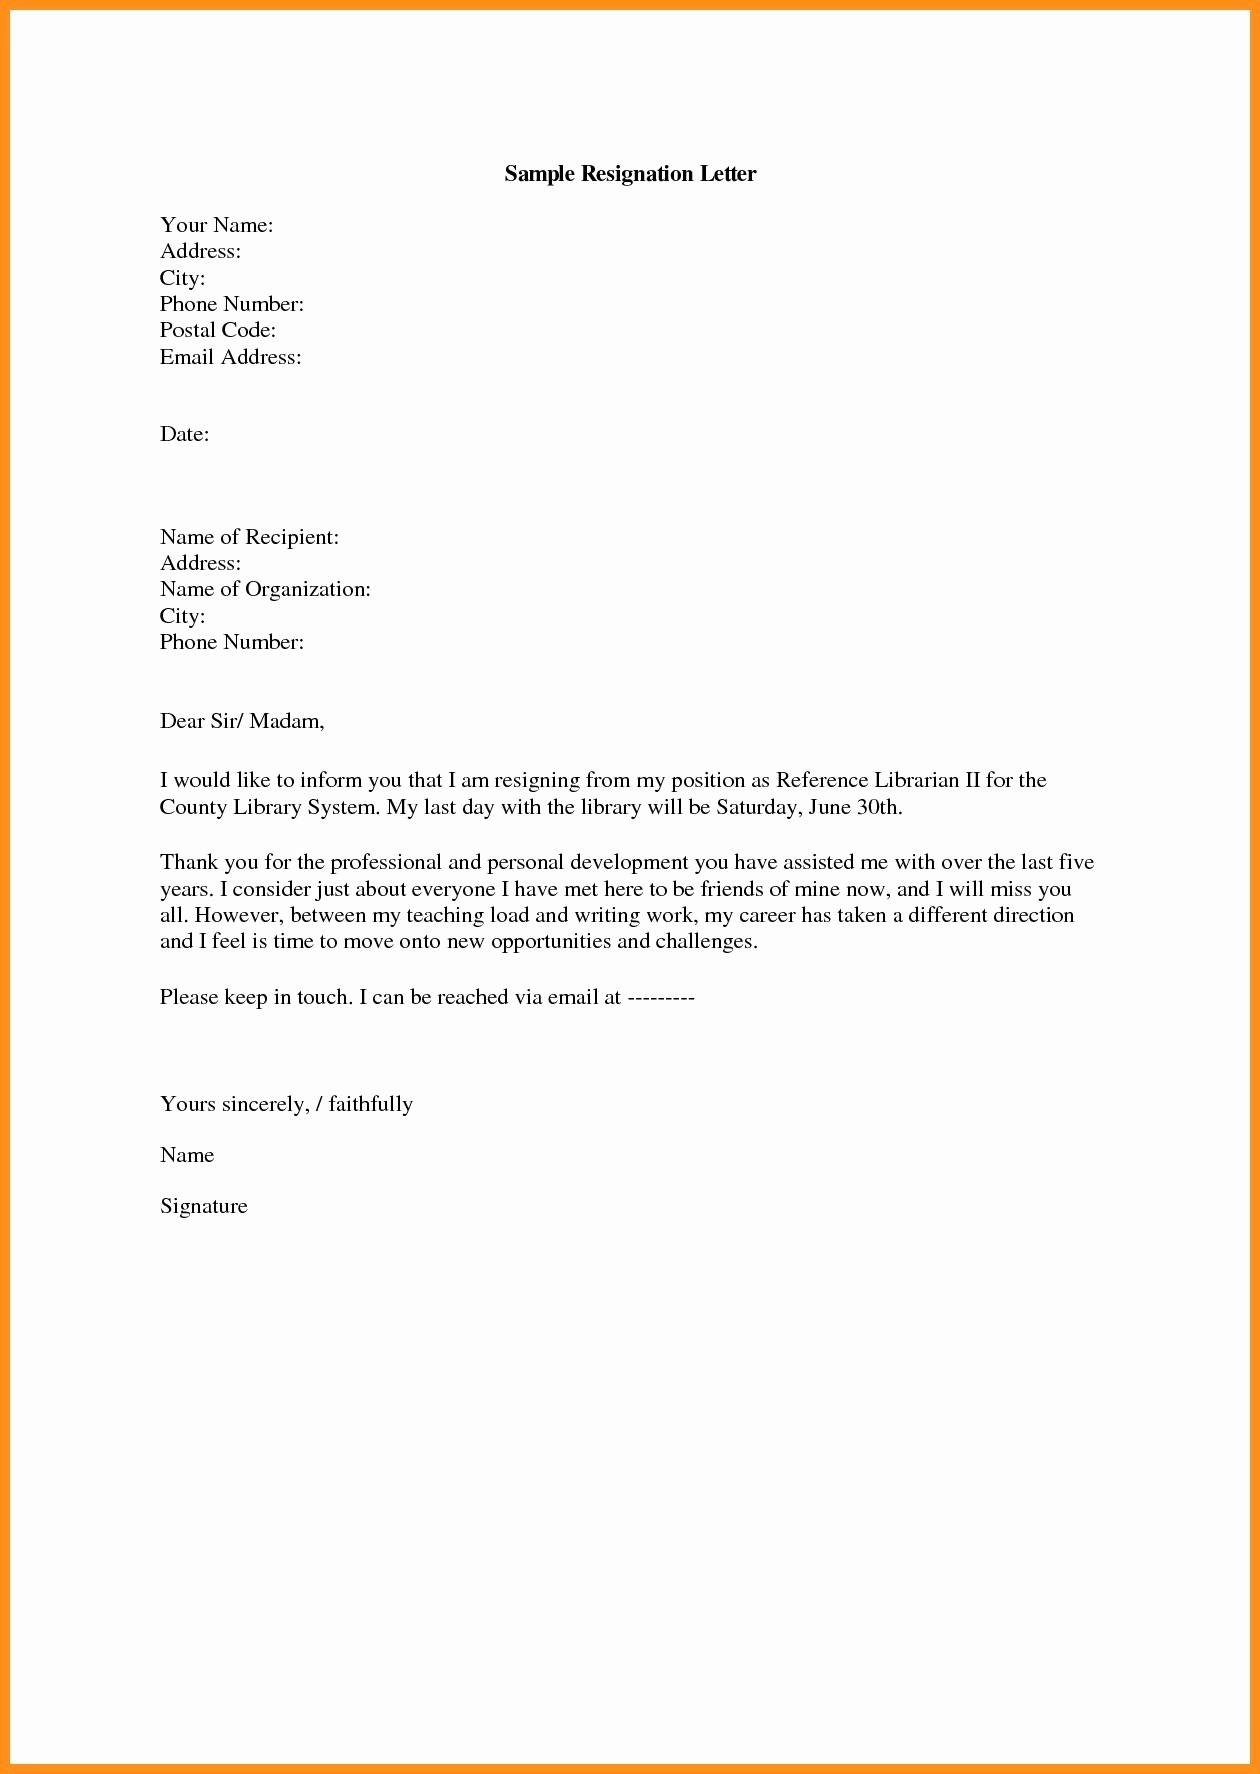 letter of transmittal template example-18 Unique Letter Transmittal 4-c